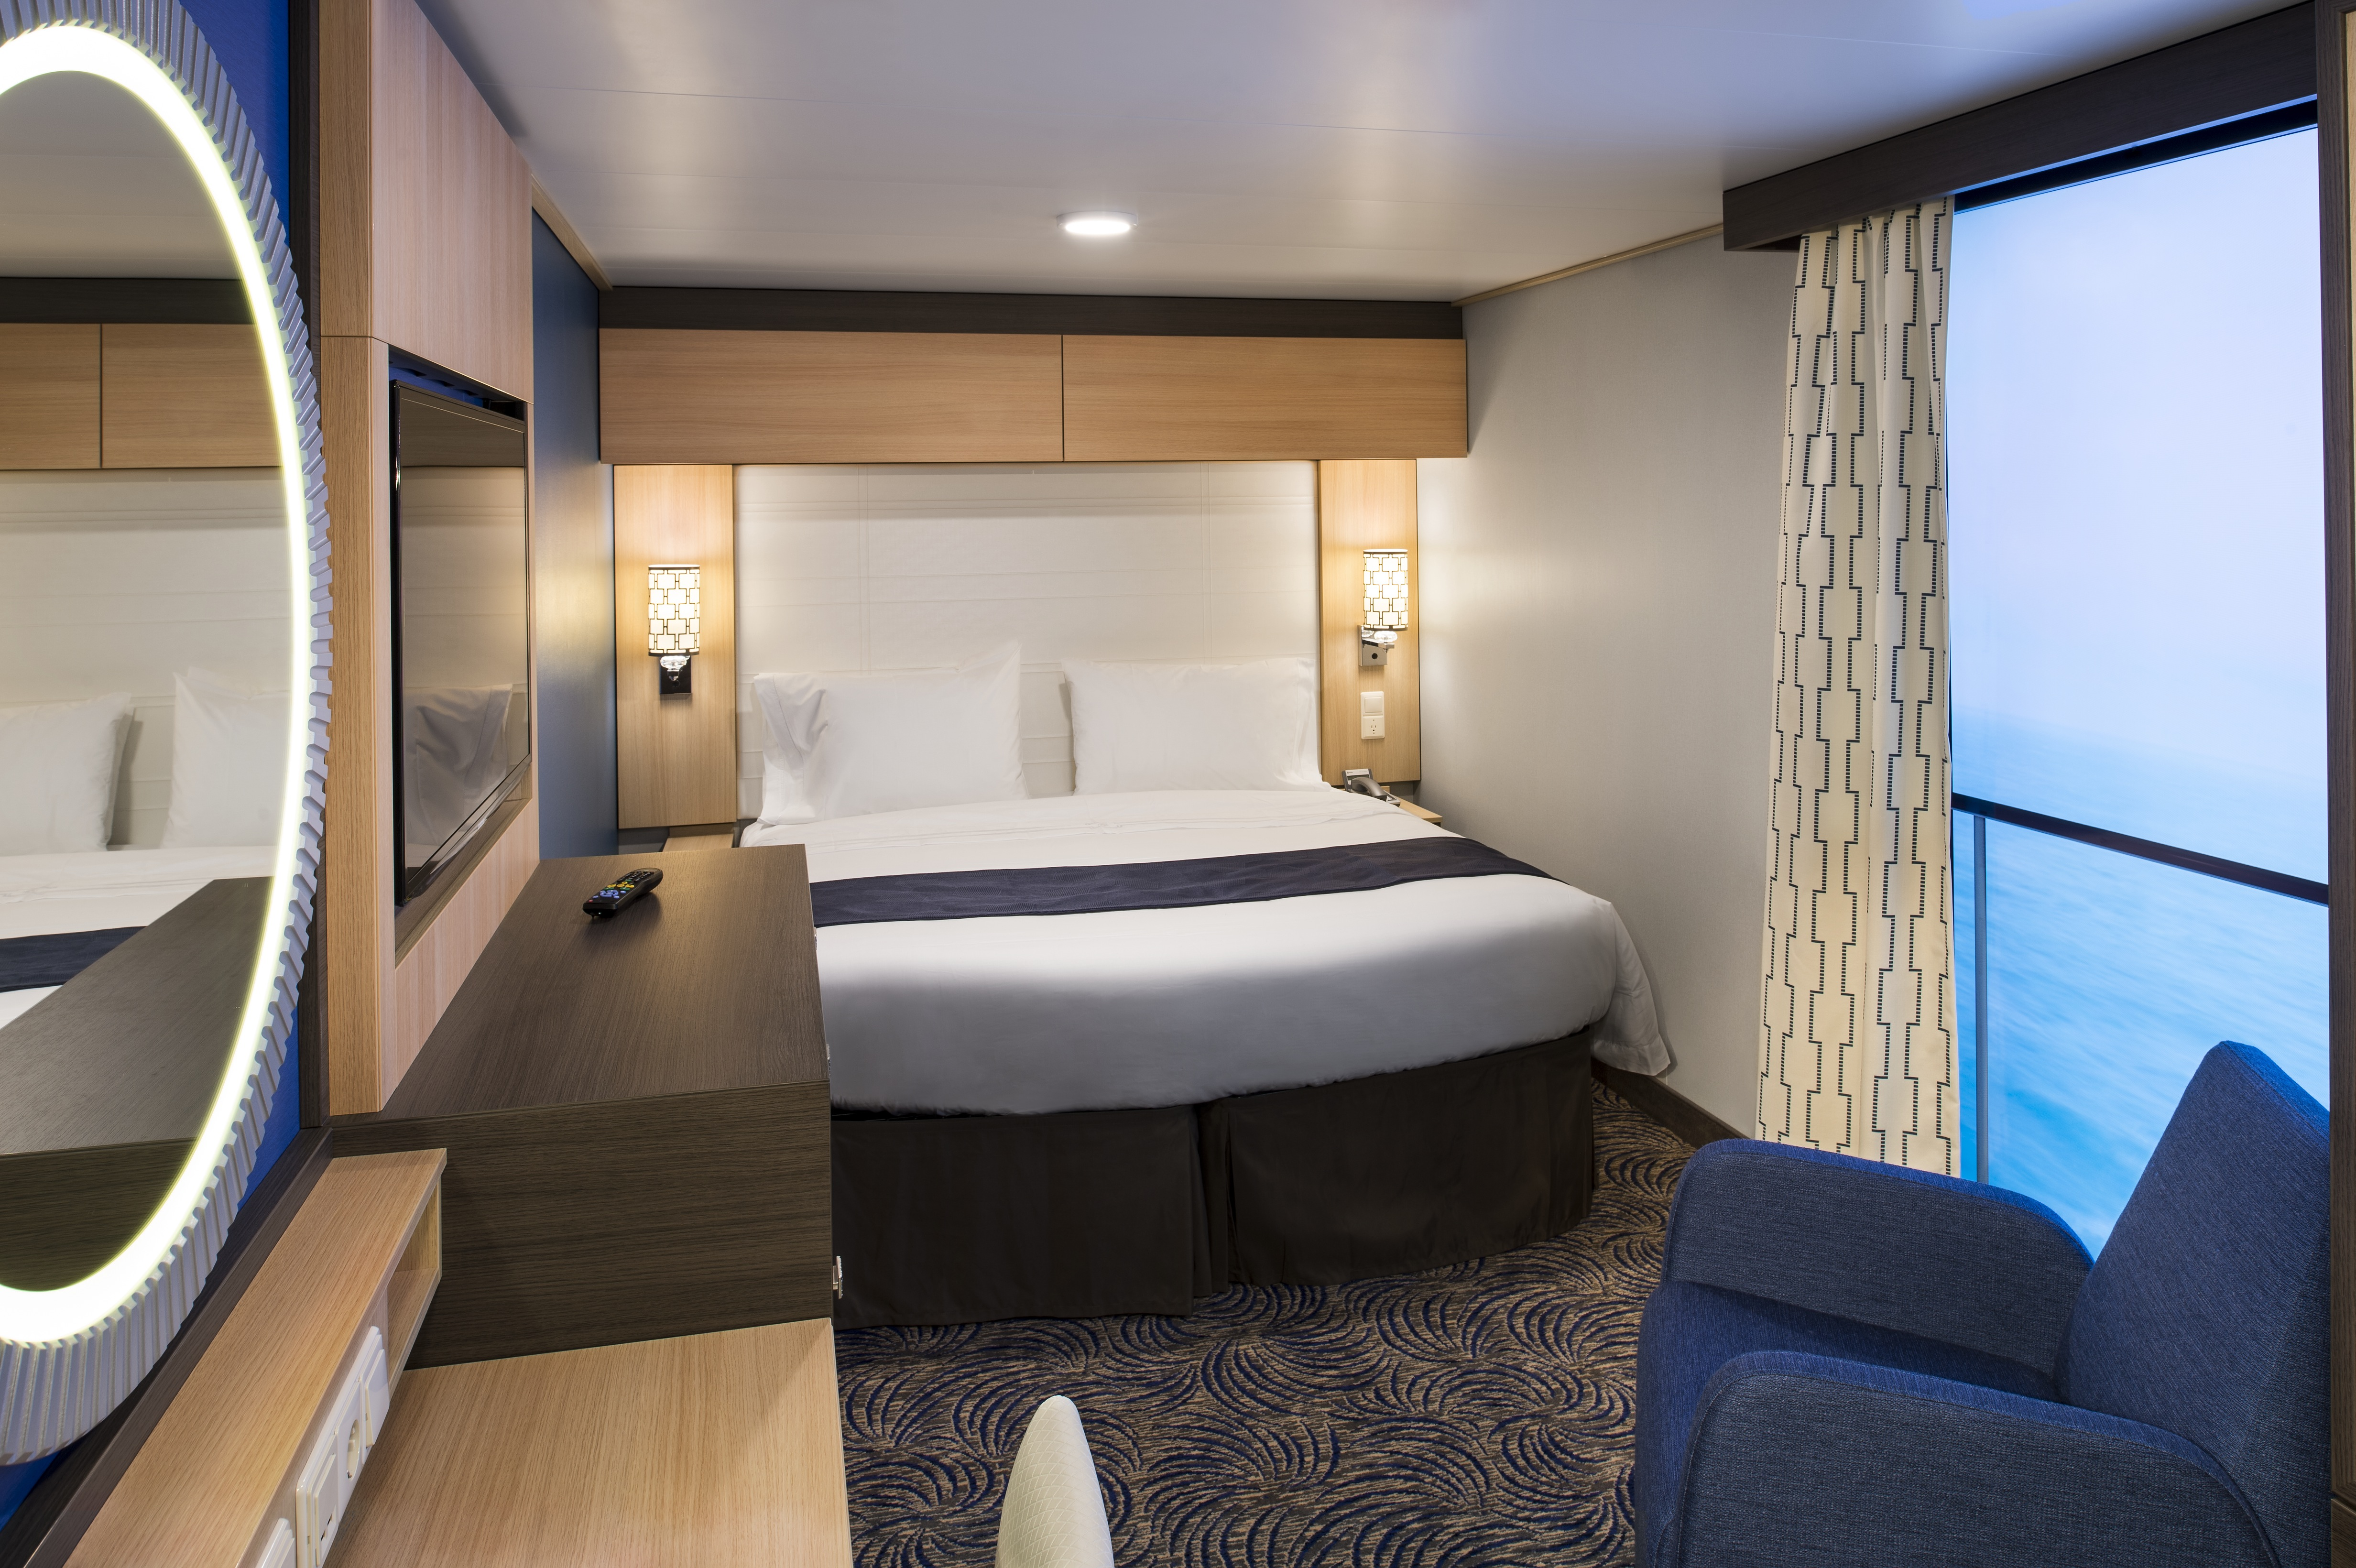 Royal Caribbean International Quantum of the Seas Accommodation Interior F.jpg